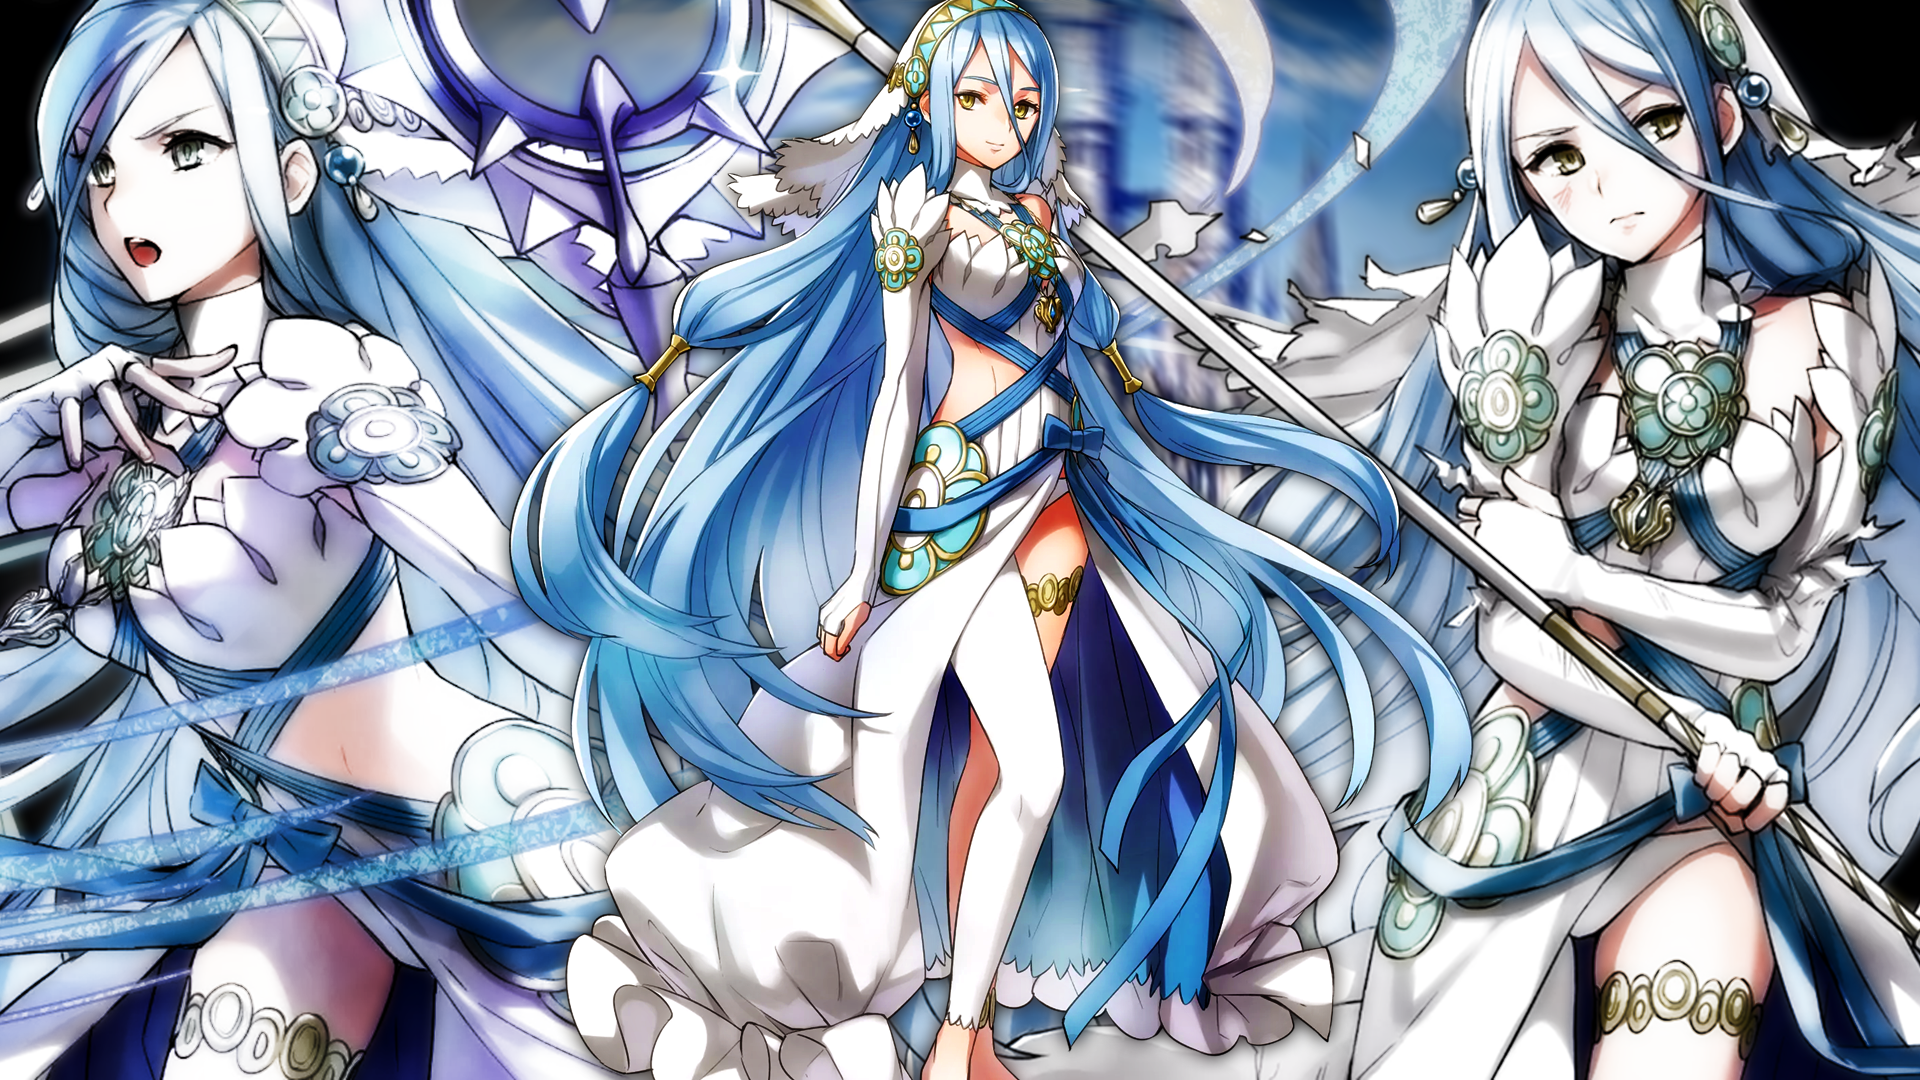 Fire Emblem Heroes Azura Wallpaper By Auroramaster On Deviantart